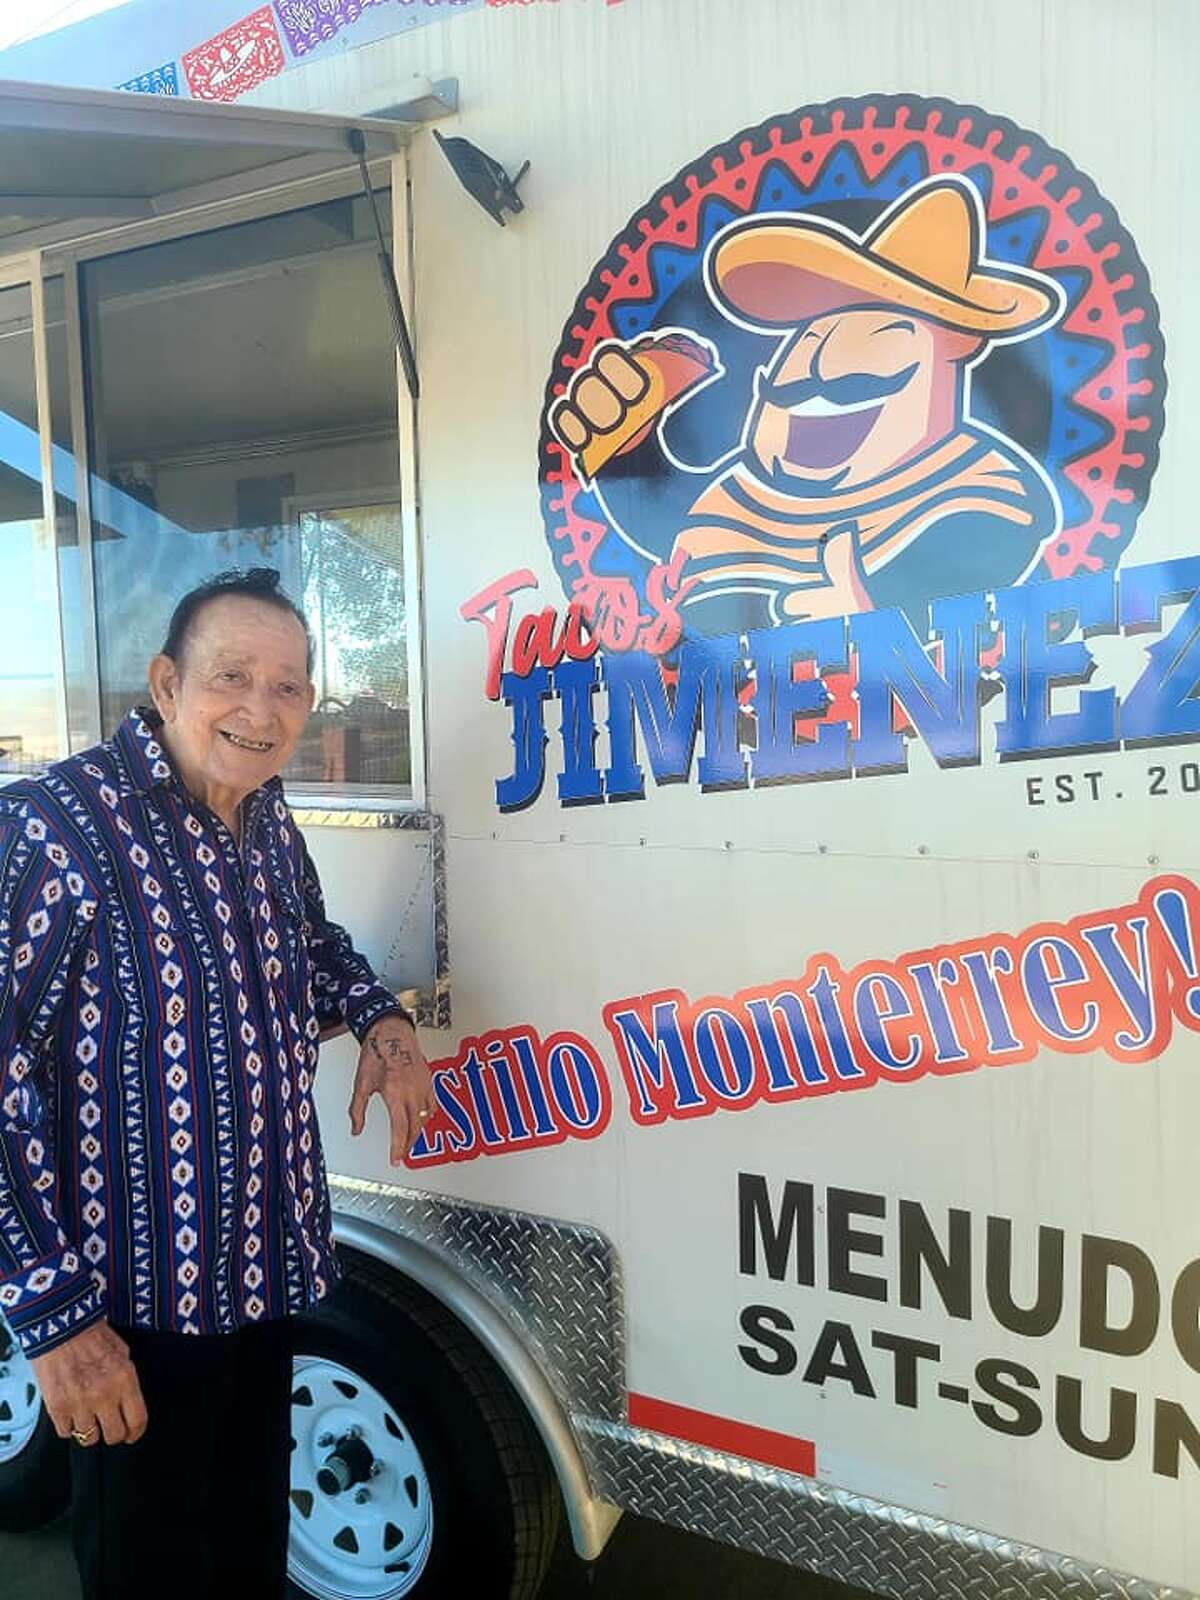 Tacos Jimenez, once owned by accordion ace Flaco Jimenez, is getting a second life thanks to his son and namesake, Leonardo Jimenez III. The younger Leonardo Jimenez said he and his wife Gilda Jimenez spent their savings to launch the mobile restaurant. Leonardo Jimenez said his parents owned a food truck about 20 years ago. His iteration Tacos Jimenez will start serving on Jan. 7.